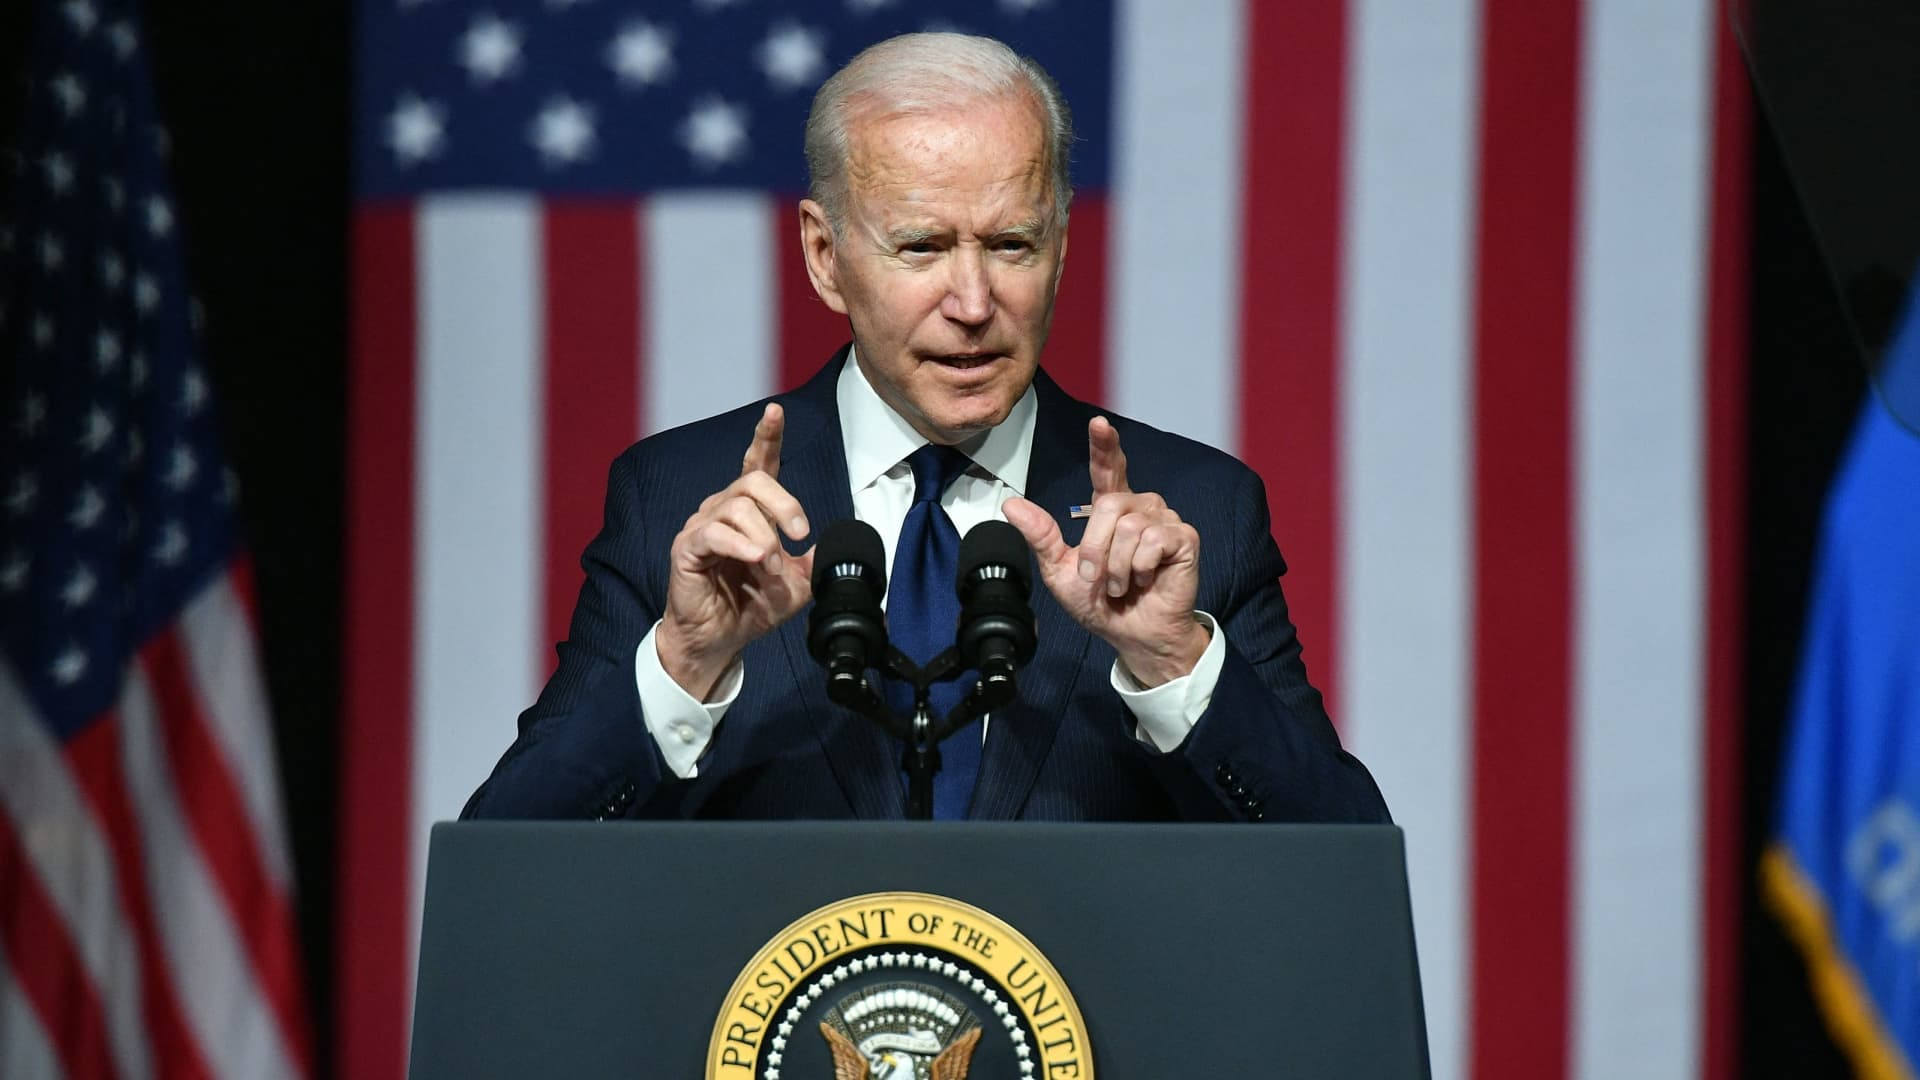 US President Joe Biden speaks during a commemoration of the 100th anniversary of the Tulsa Race Massacre at the Greenwood Cultural Center in Tulsa, Oklahoma, on June 1, 2021.